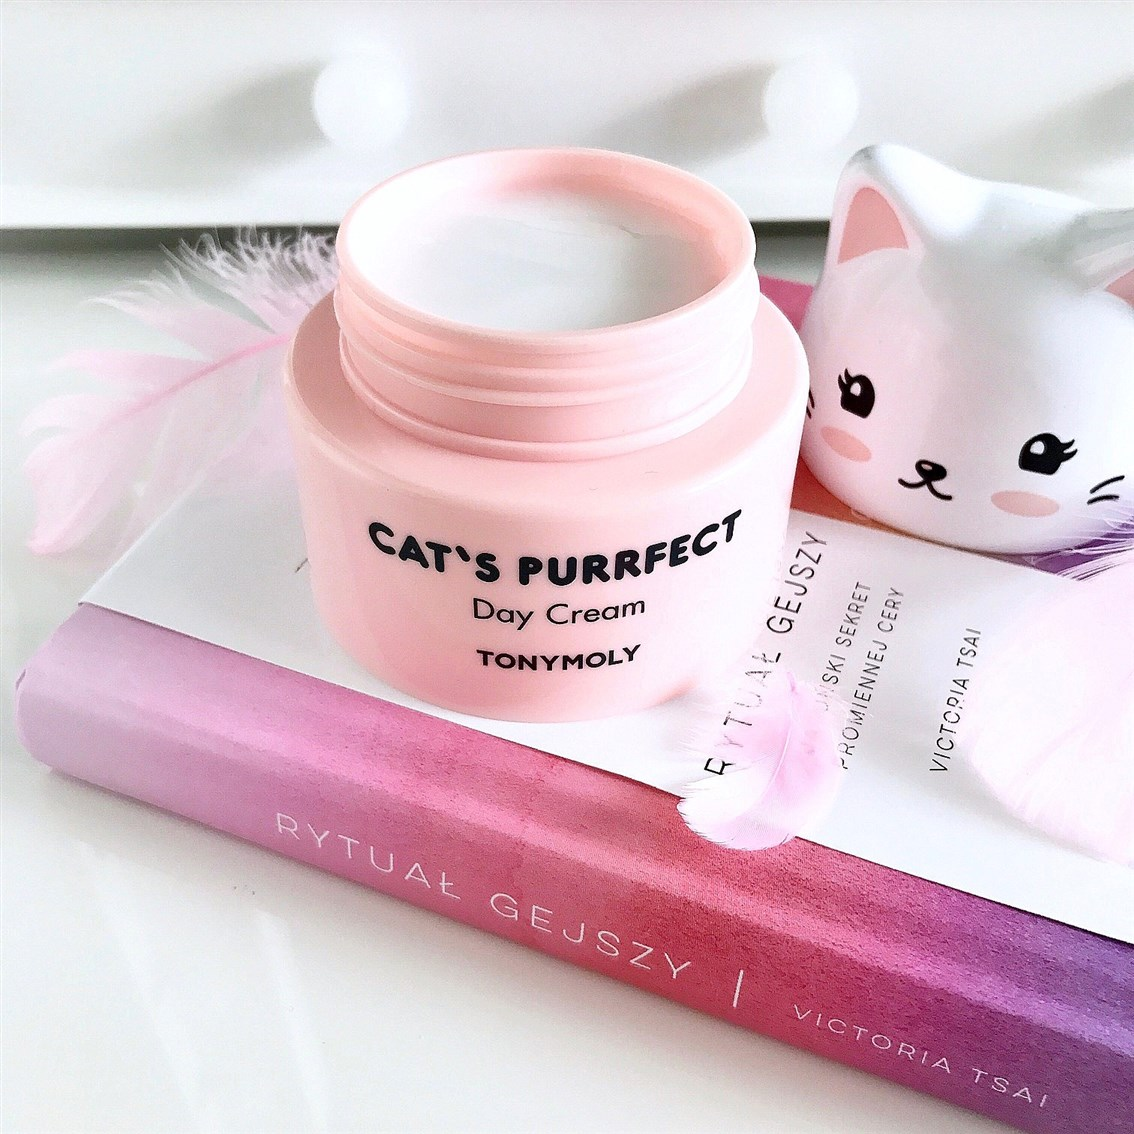 Tonymoly Cat's Purrfect Day Cream konsystencja